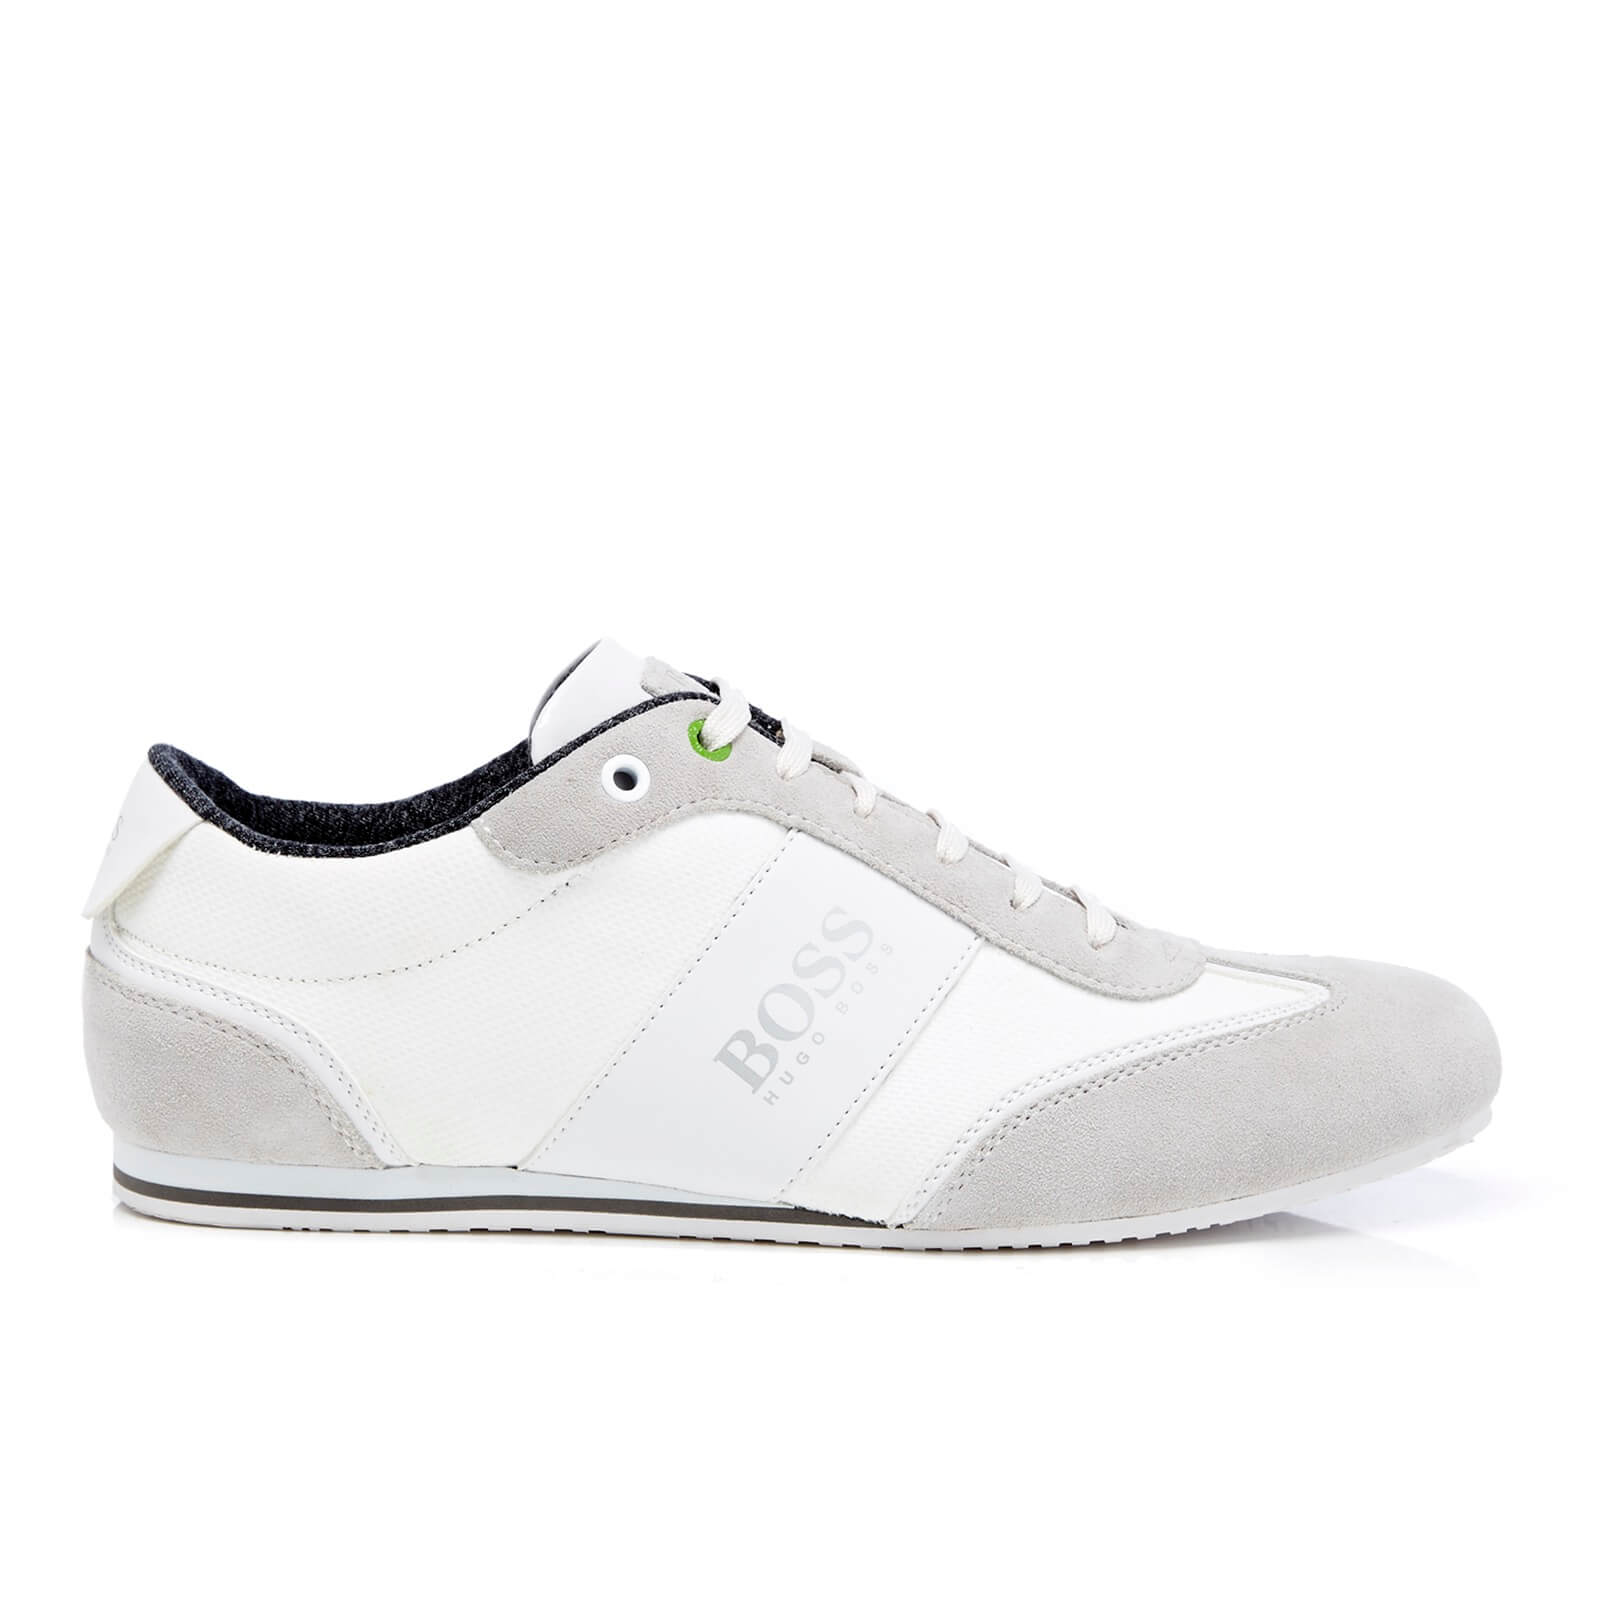 boy 60% cheap fast delivery BOSS Green Men's Lighter Low Top Trainers - White